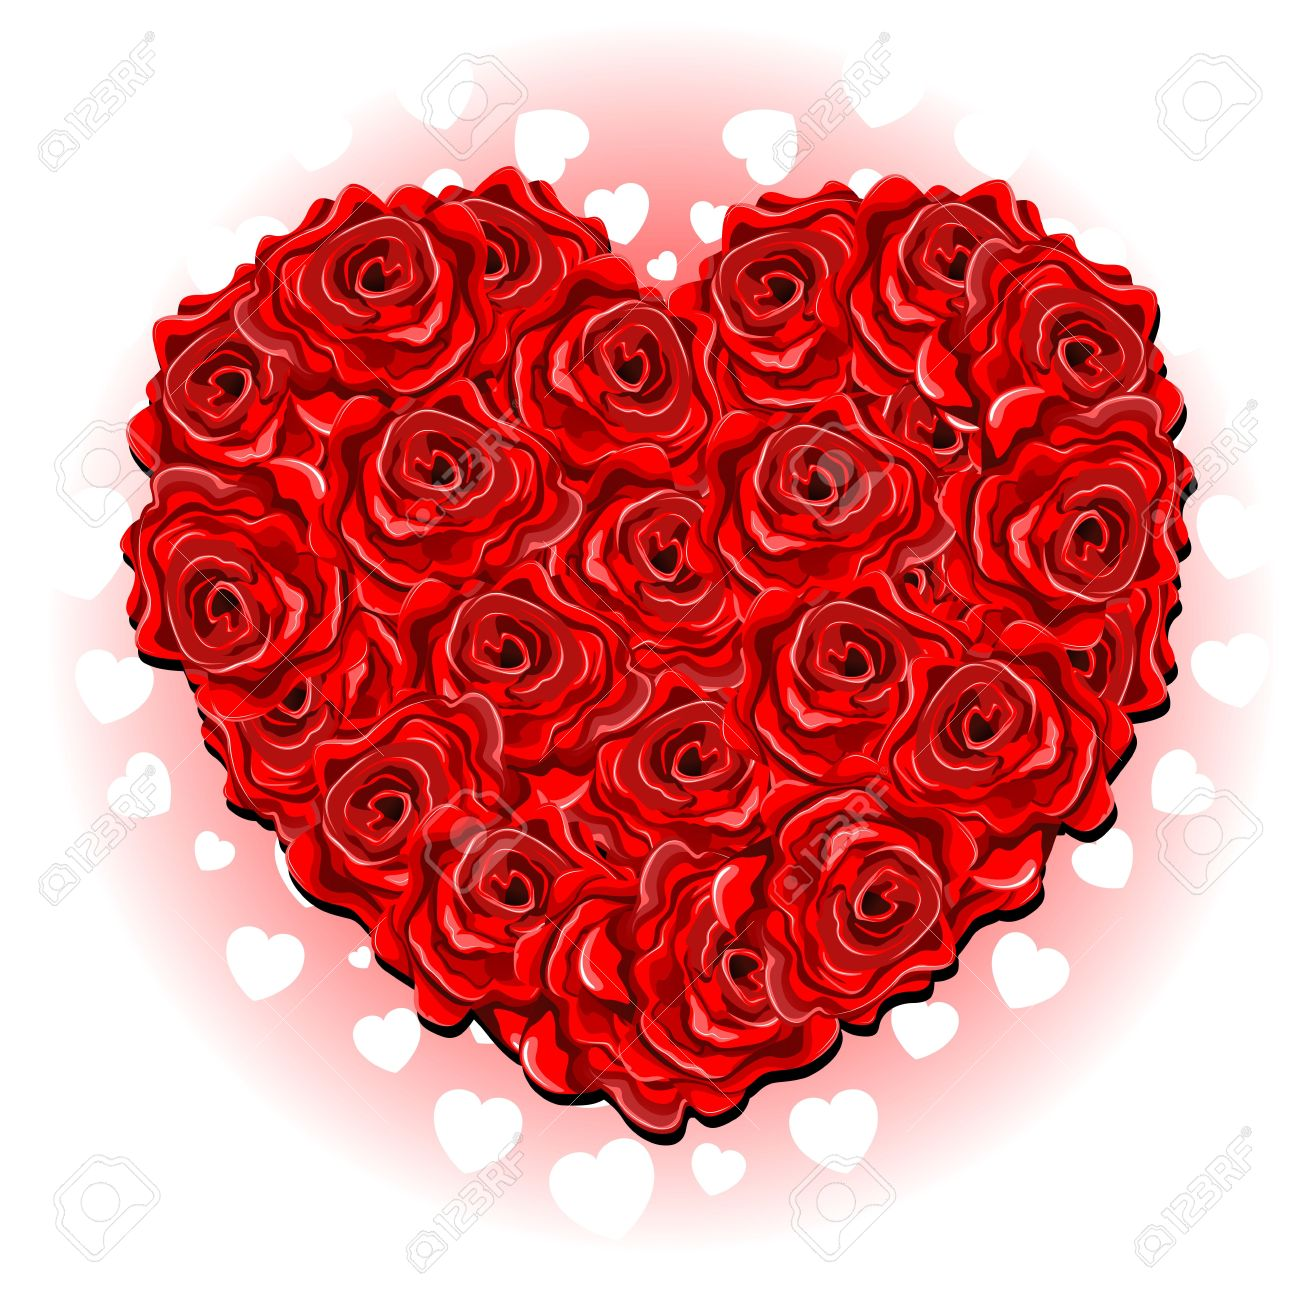 be my valentine red roses love heart bouquet royalty free cliparts